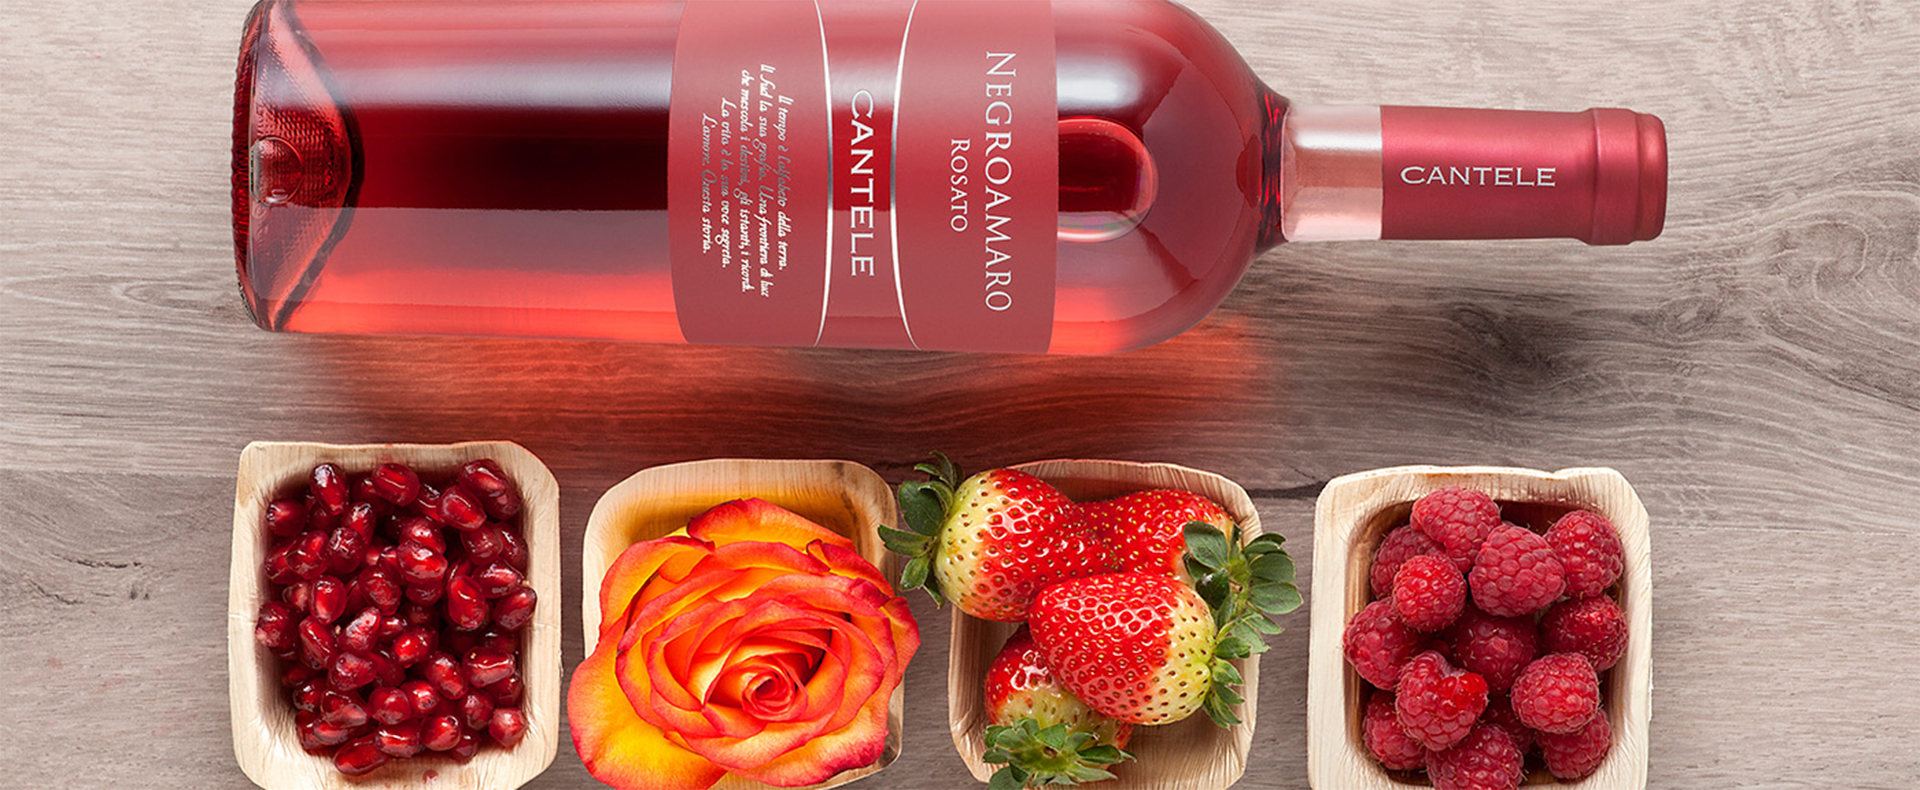 "Wine Enthusiast: ""Cantele's Negroamaro Rosato is a great top sirloin pairing."""